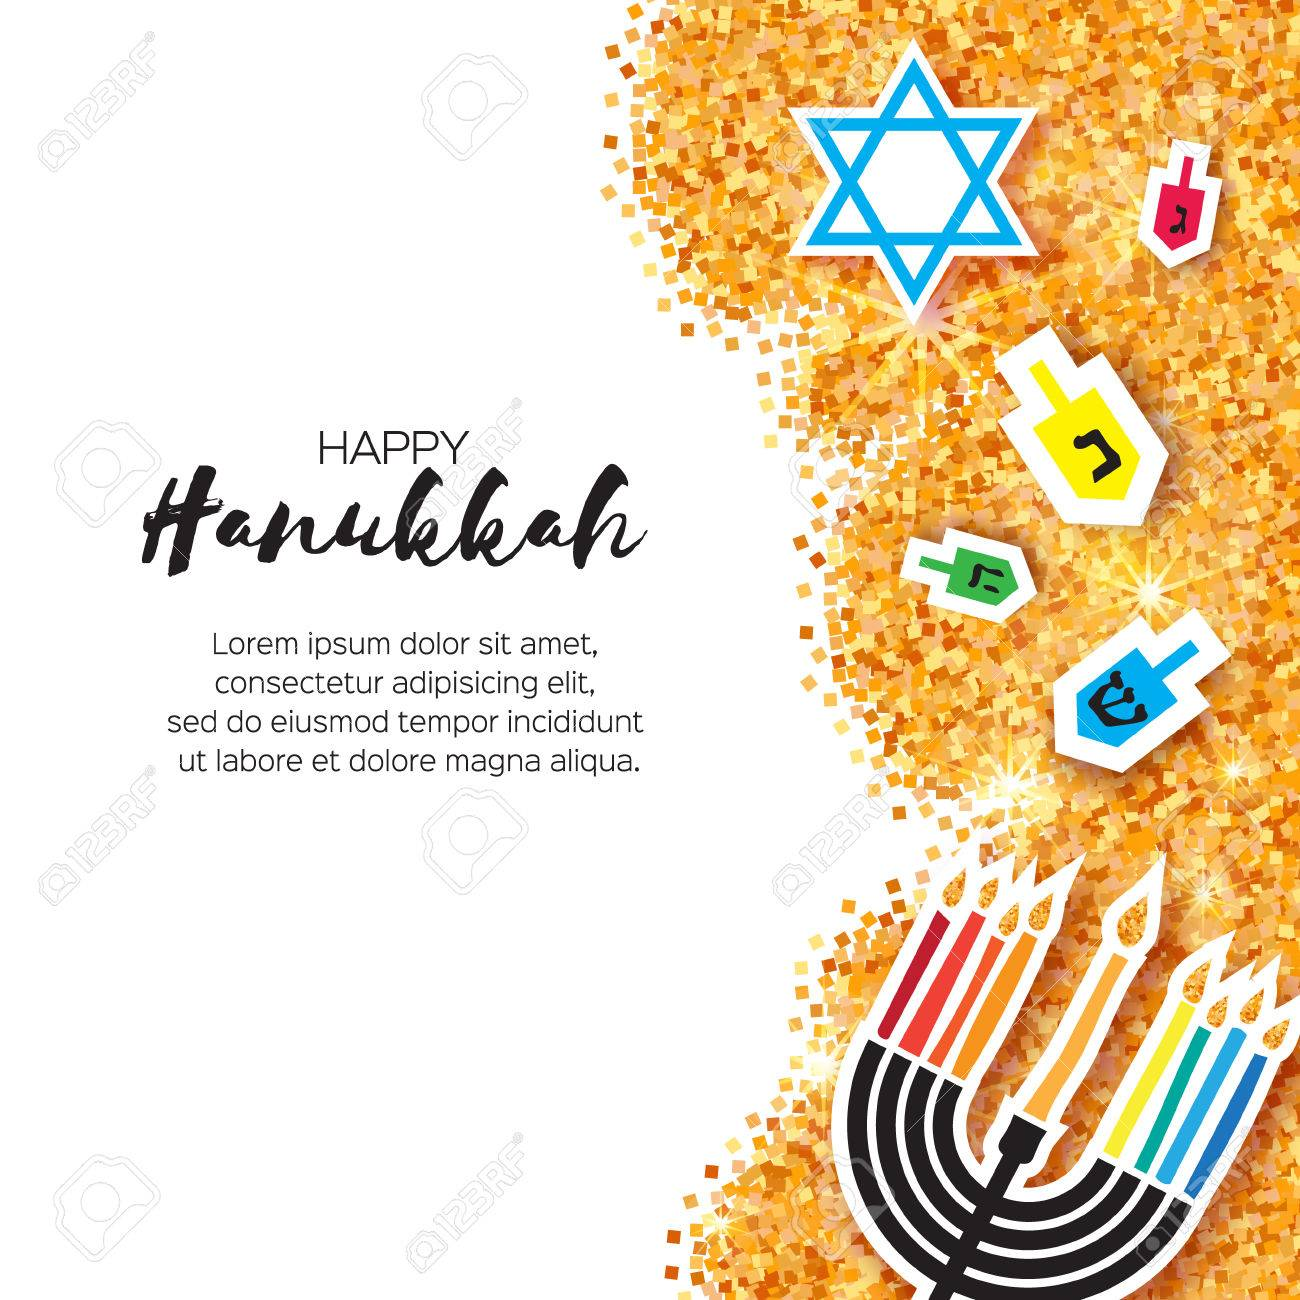 Colorful Origami Happy Hanukkah Greeting card on white background with space for text. Jewish holiday with menorah - traditional Candelabra,candles and dreidels - spinning top. Vector illustration - 66658807